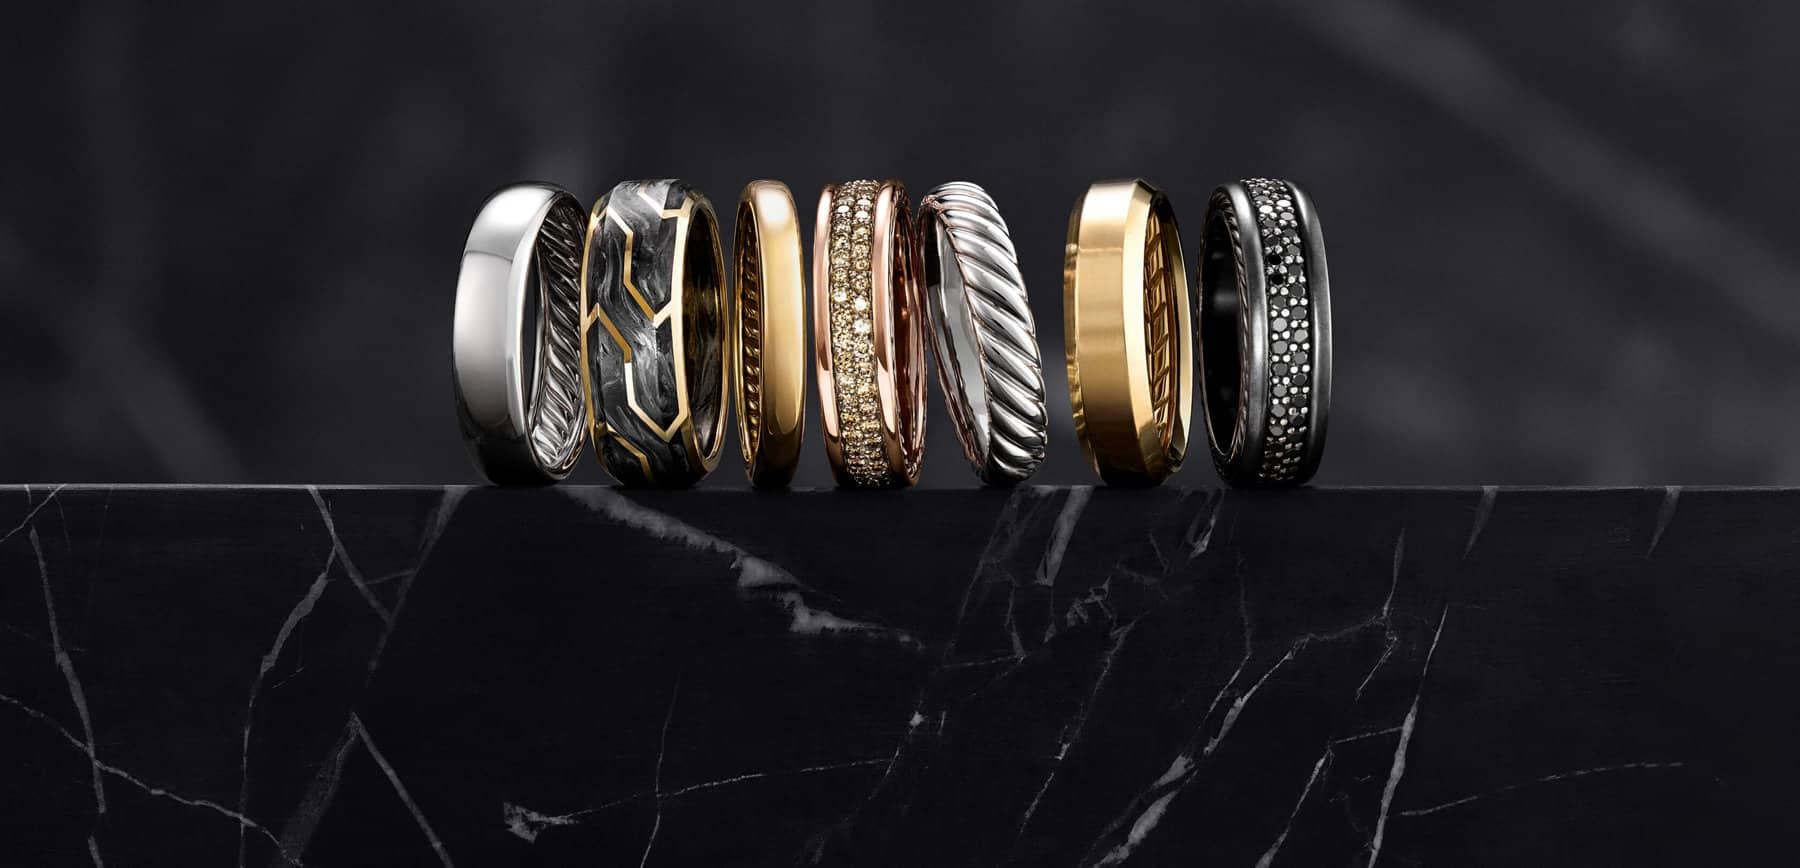 A color photograph shows a row of seven David Yurman men's wedding bands from the DY Classic, Forged Carbon, Streamline, Beveled and Cable collections atop a dark, marbled stone surface with a dark background. Each is crafted from 18K white, yellow or rose gold, 18K yellow gold and forged carbon, or black titanium with or without cognac or black diamonds.